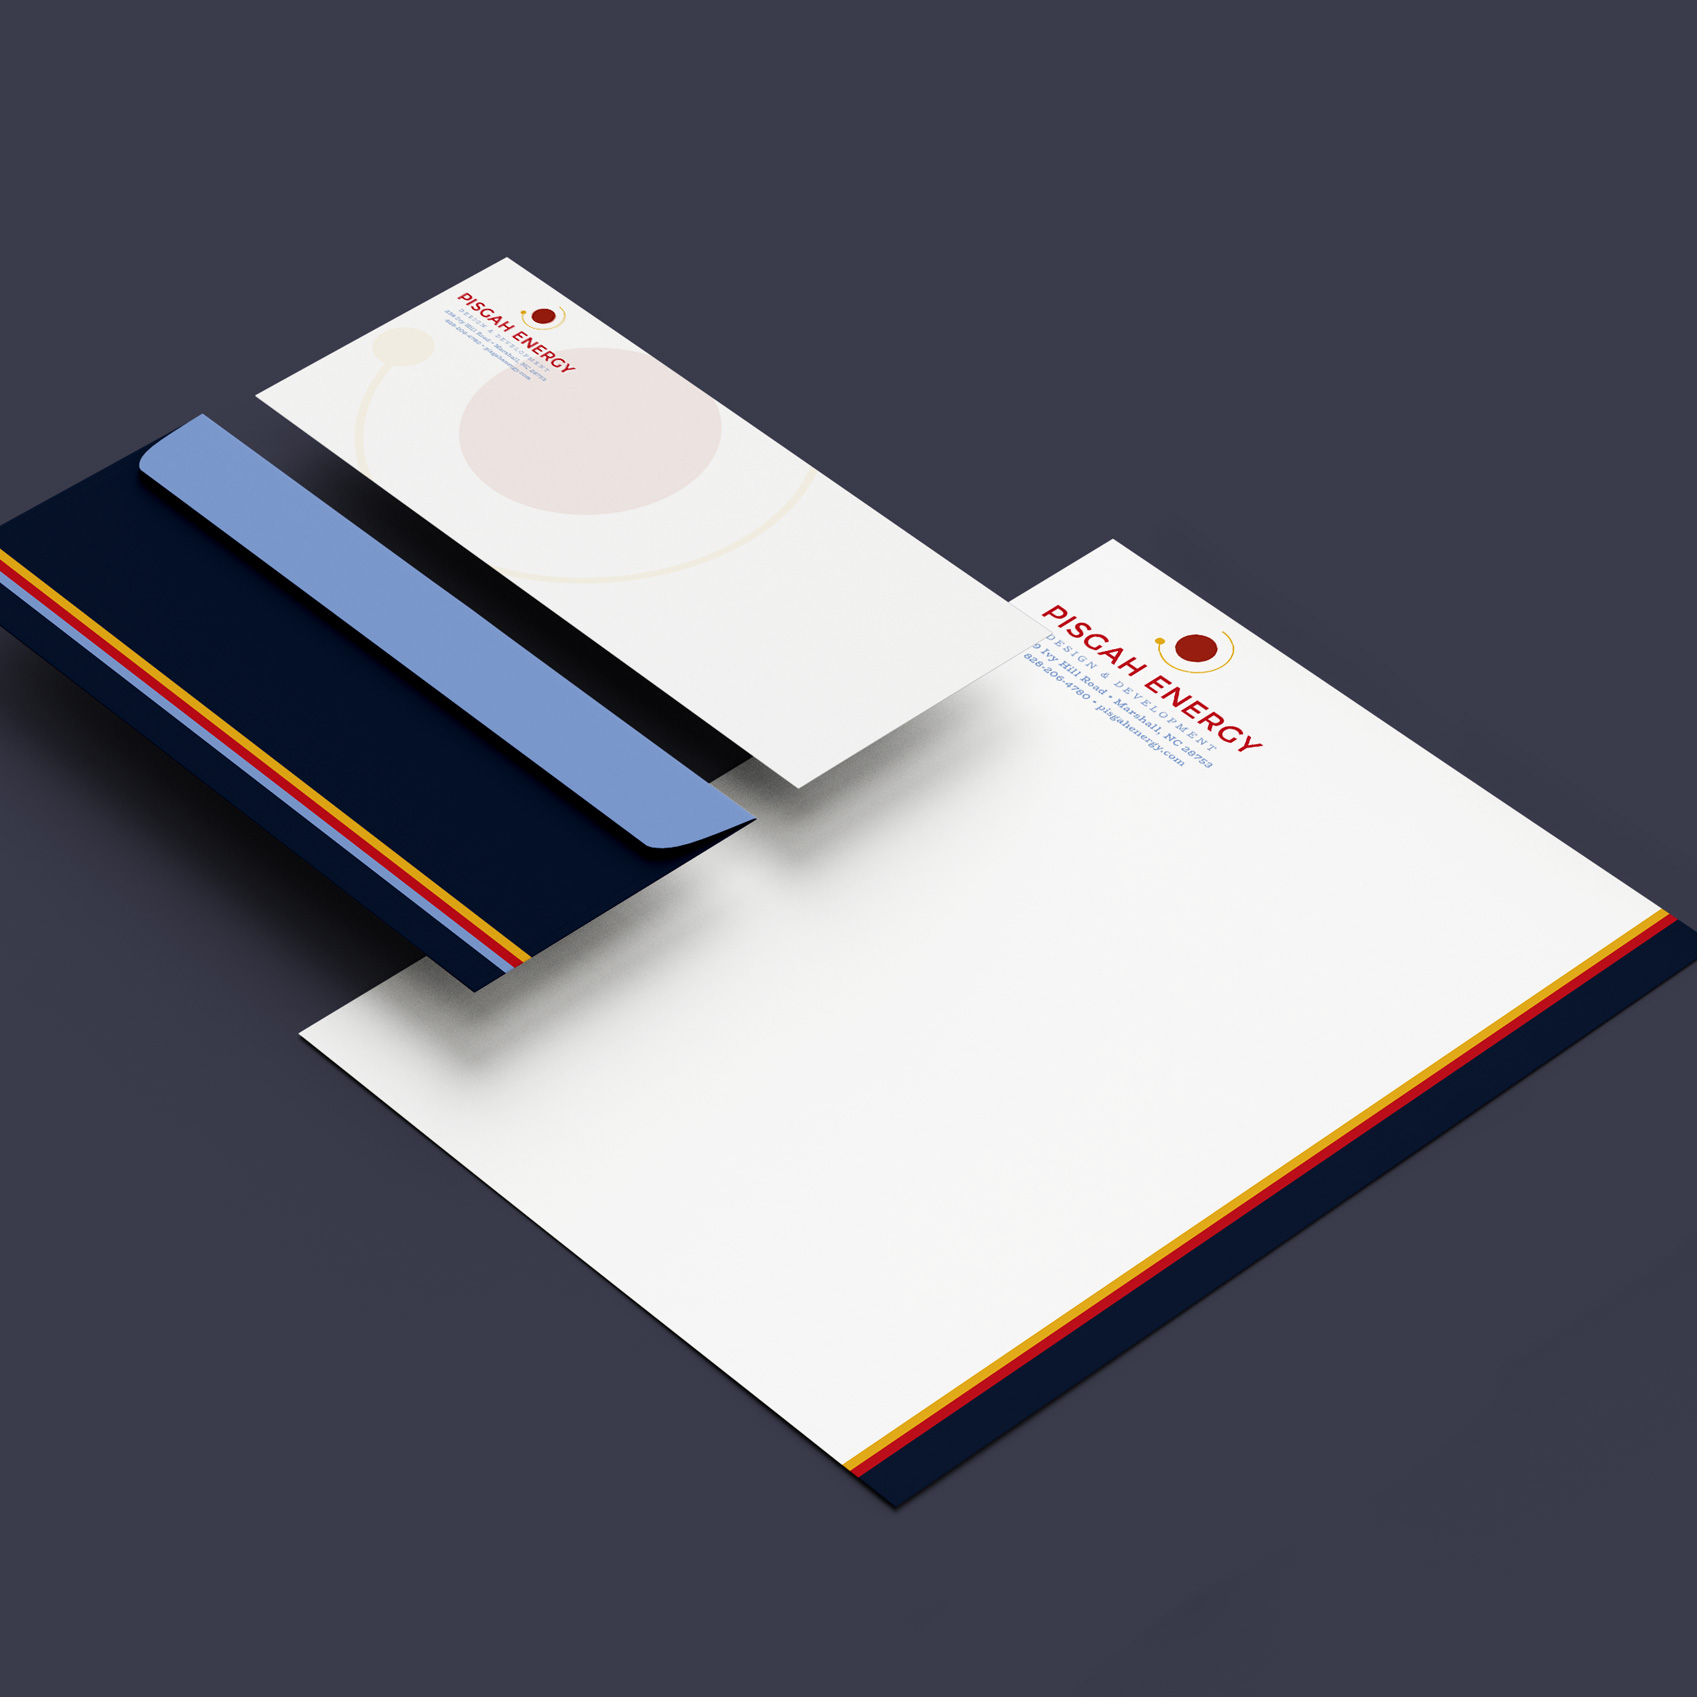 Letterhead & Envelope Design - Pisgah Energy